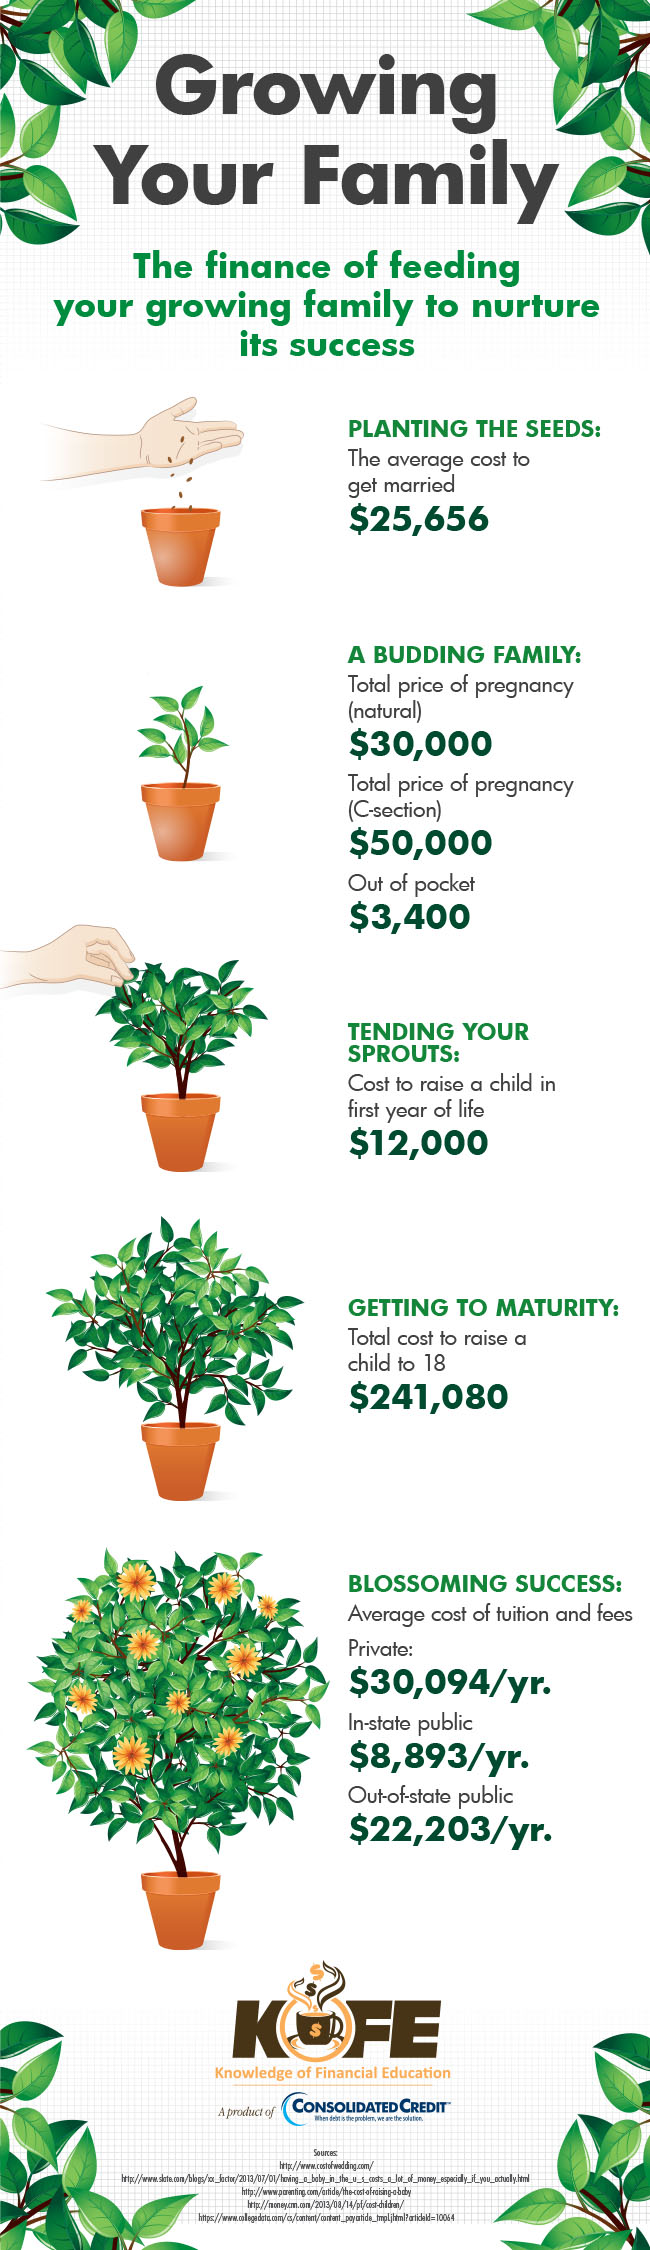 Growing Your Family infographic